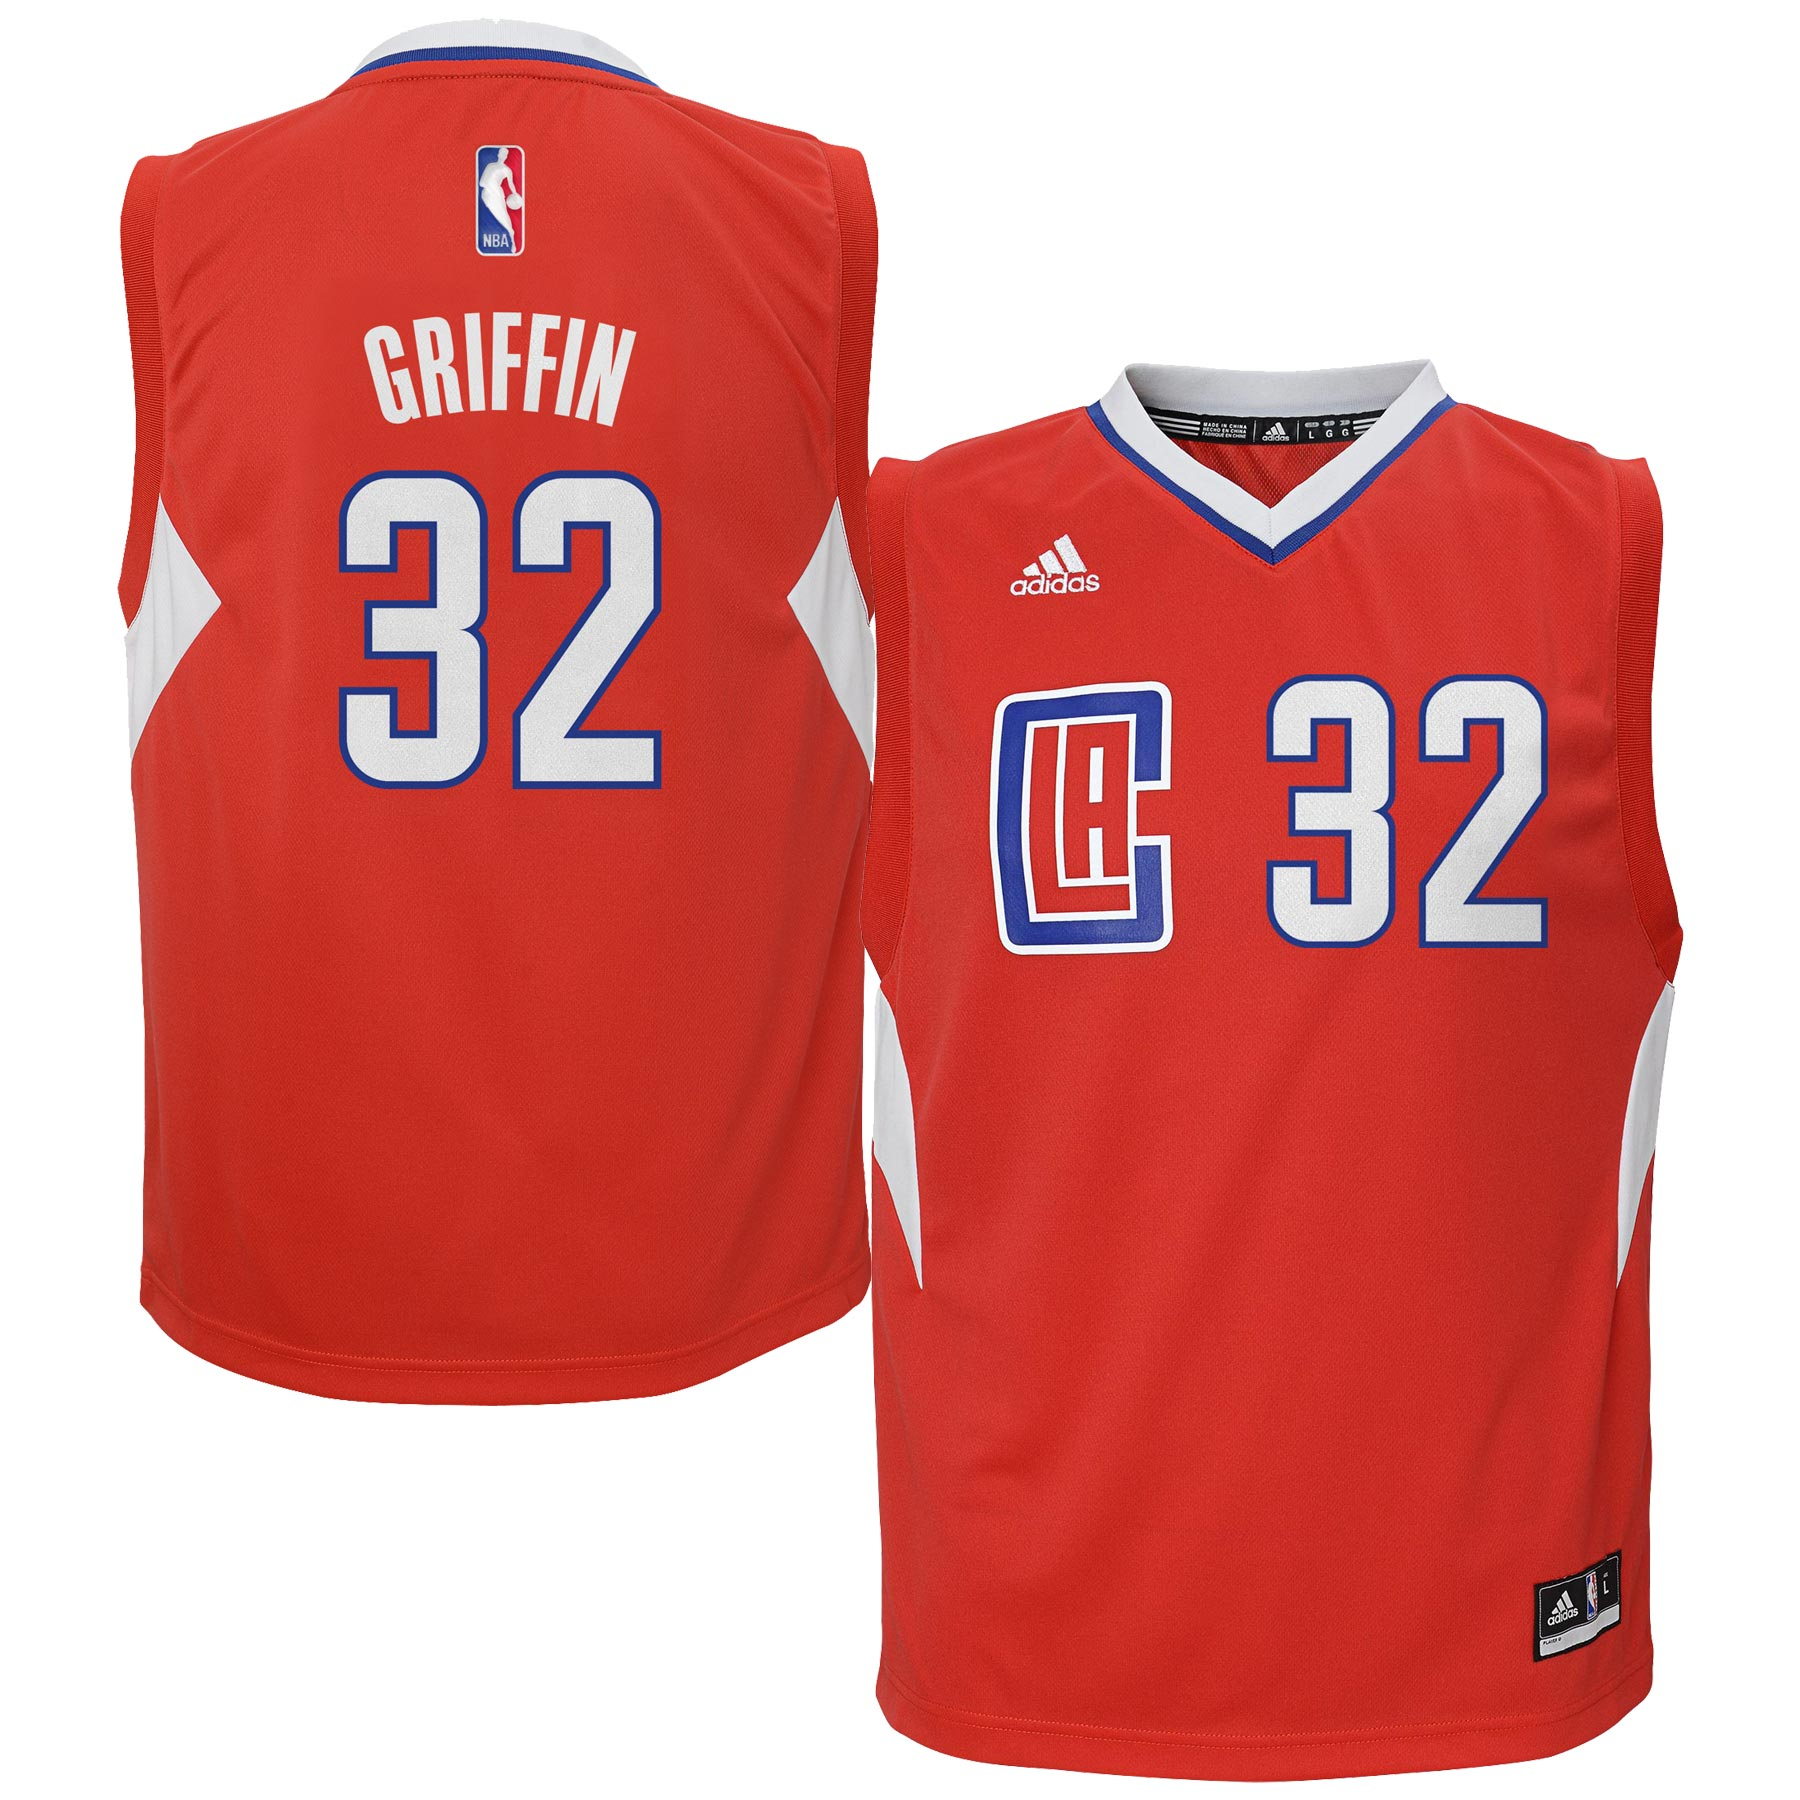 Blake Griffin LA Clippers adidas Youth Replica Jersey - Red